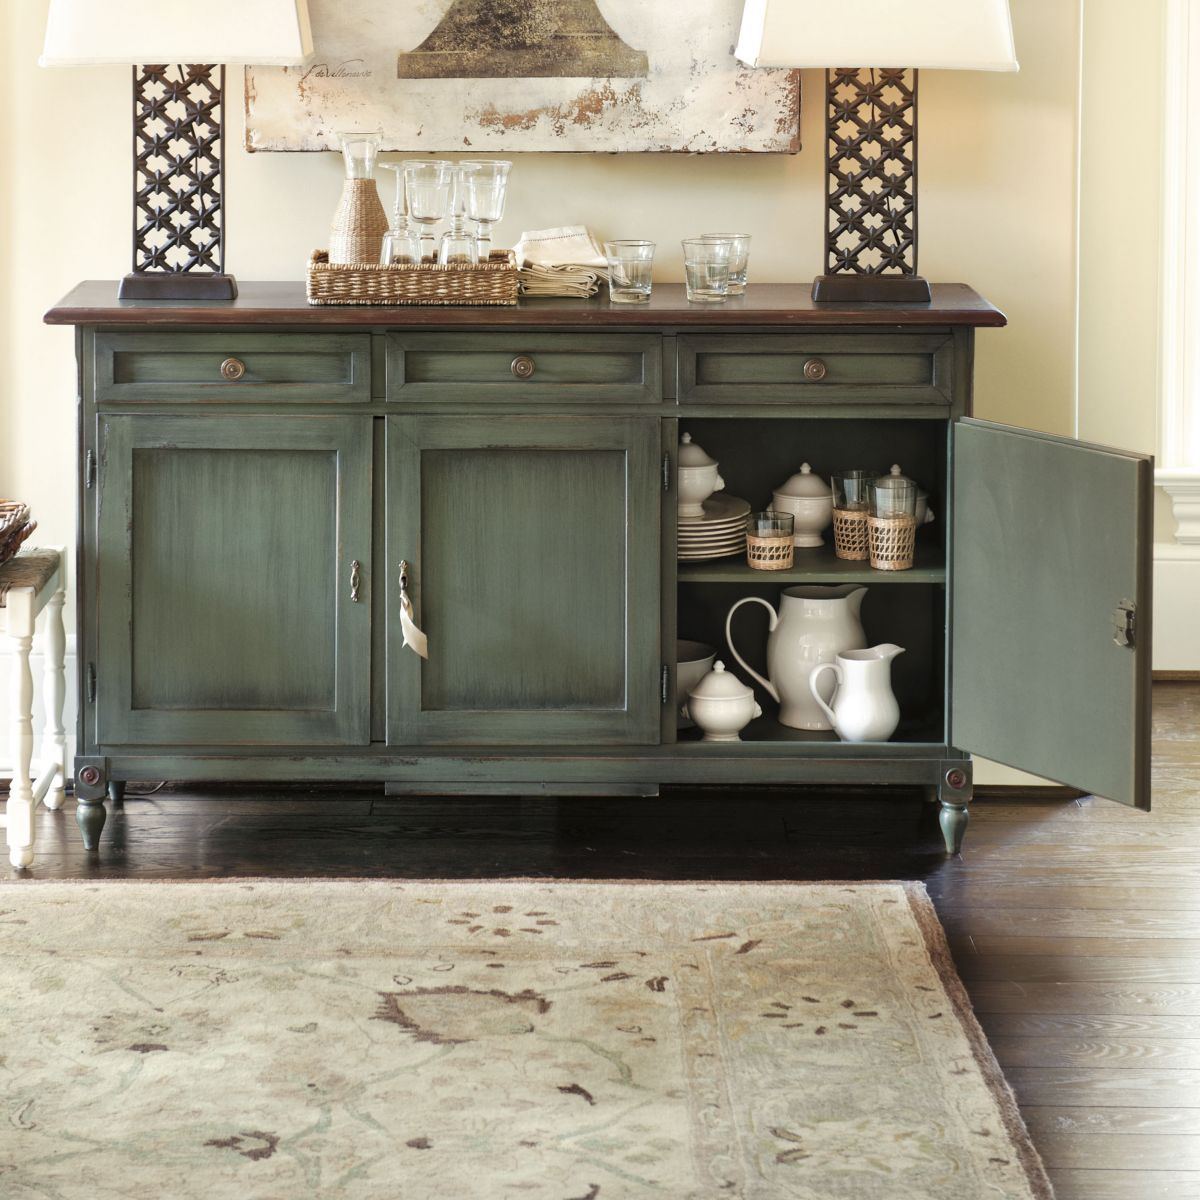 louis xvi sideboard in warm green | hogar dulce hogar! | pinterest